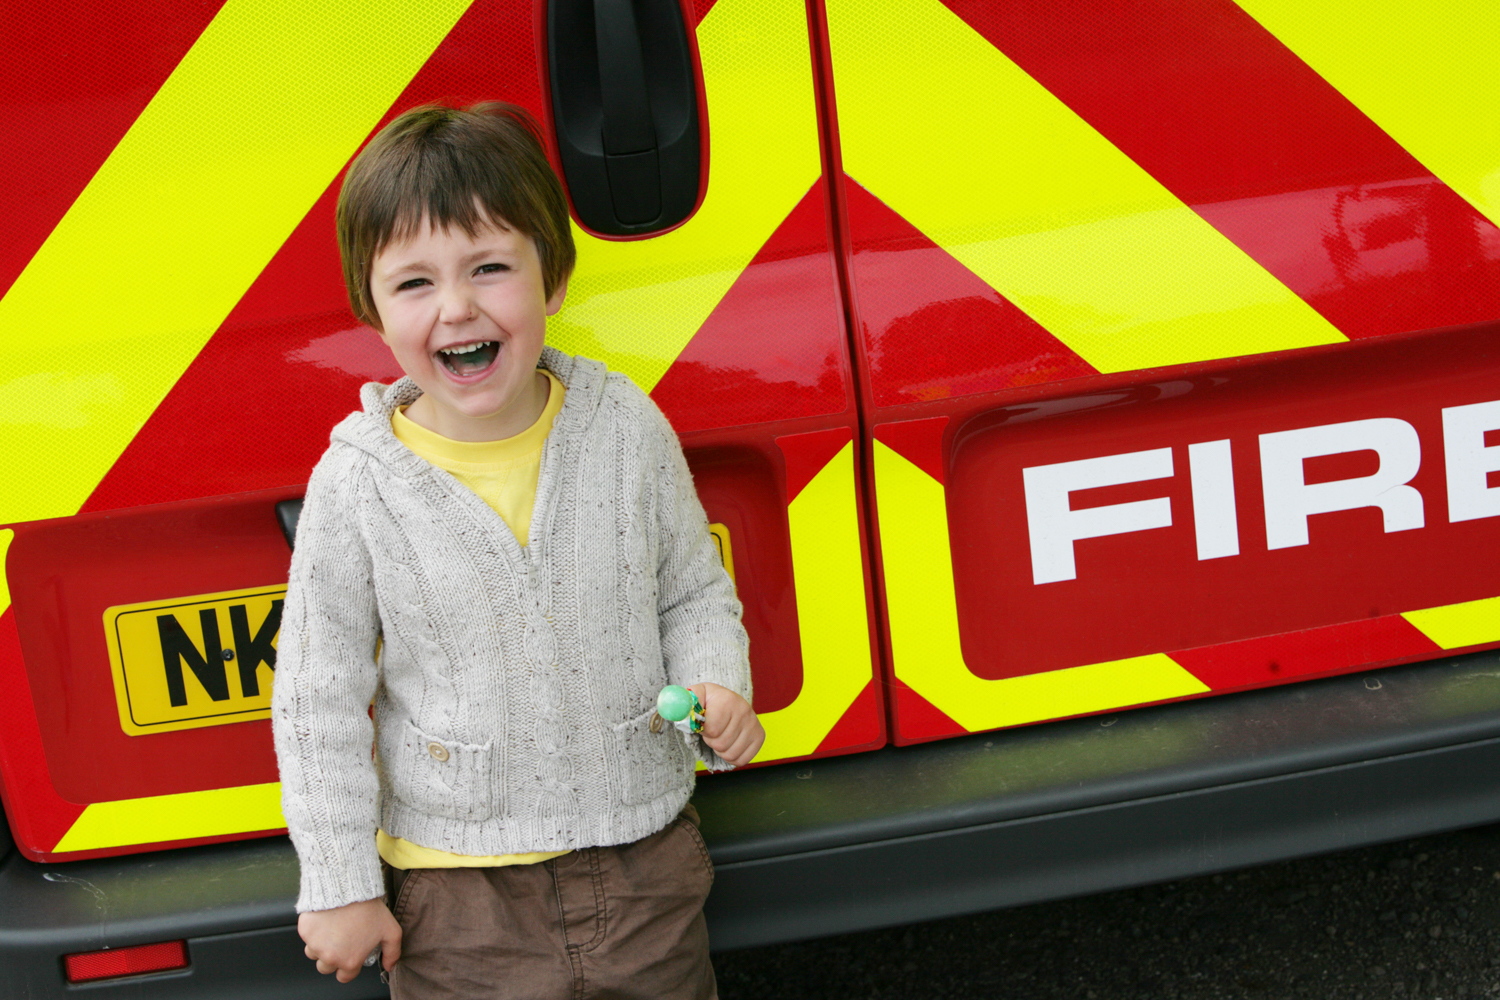 PICTORIAL_BERWICK_bookstart-heatherslaw-funded-day-out-educational-extended-services-lorna-chappell-organised-fire-police-9893.jpg